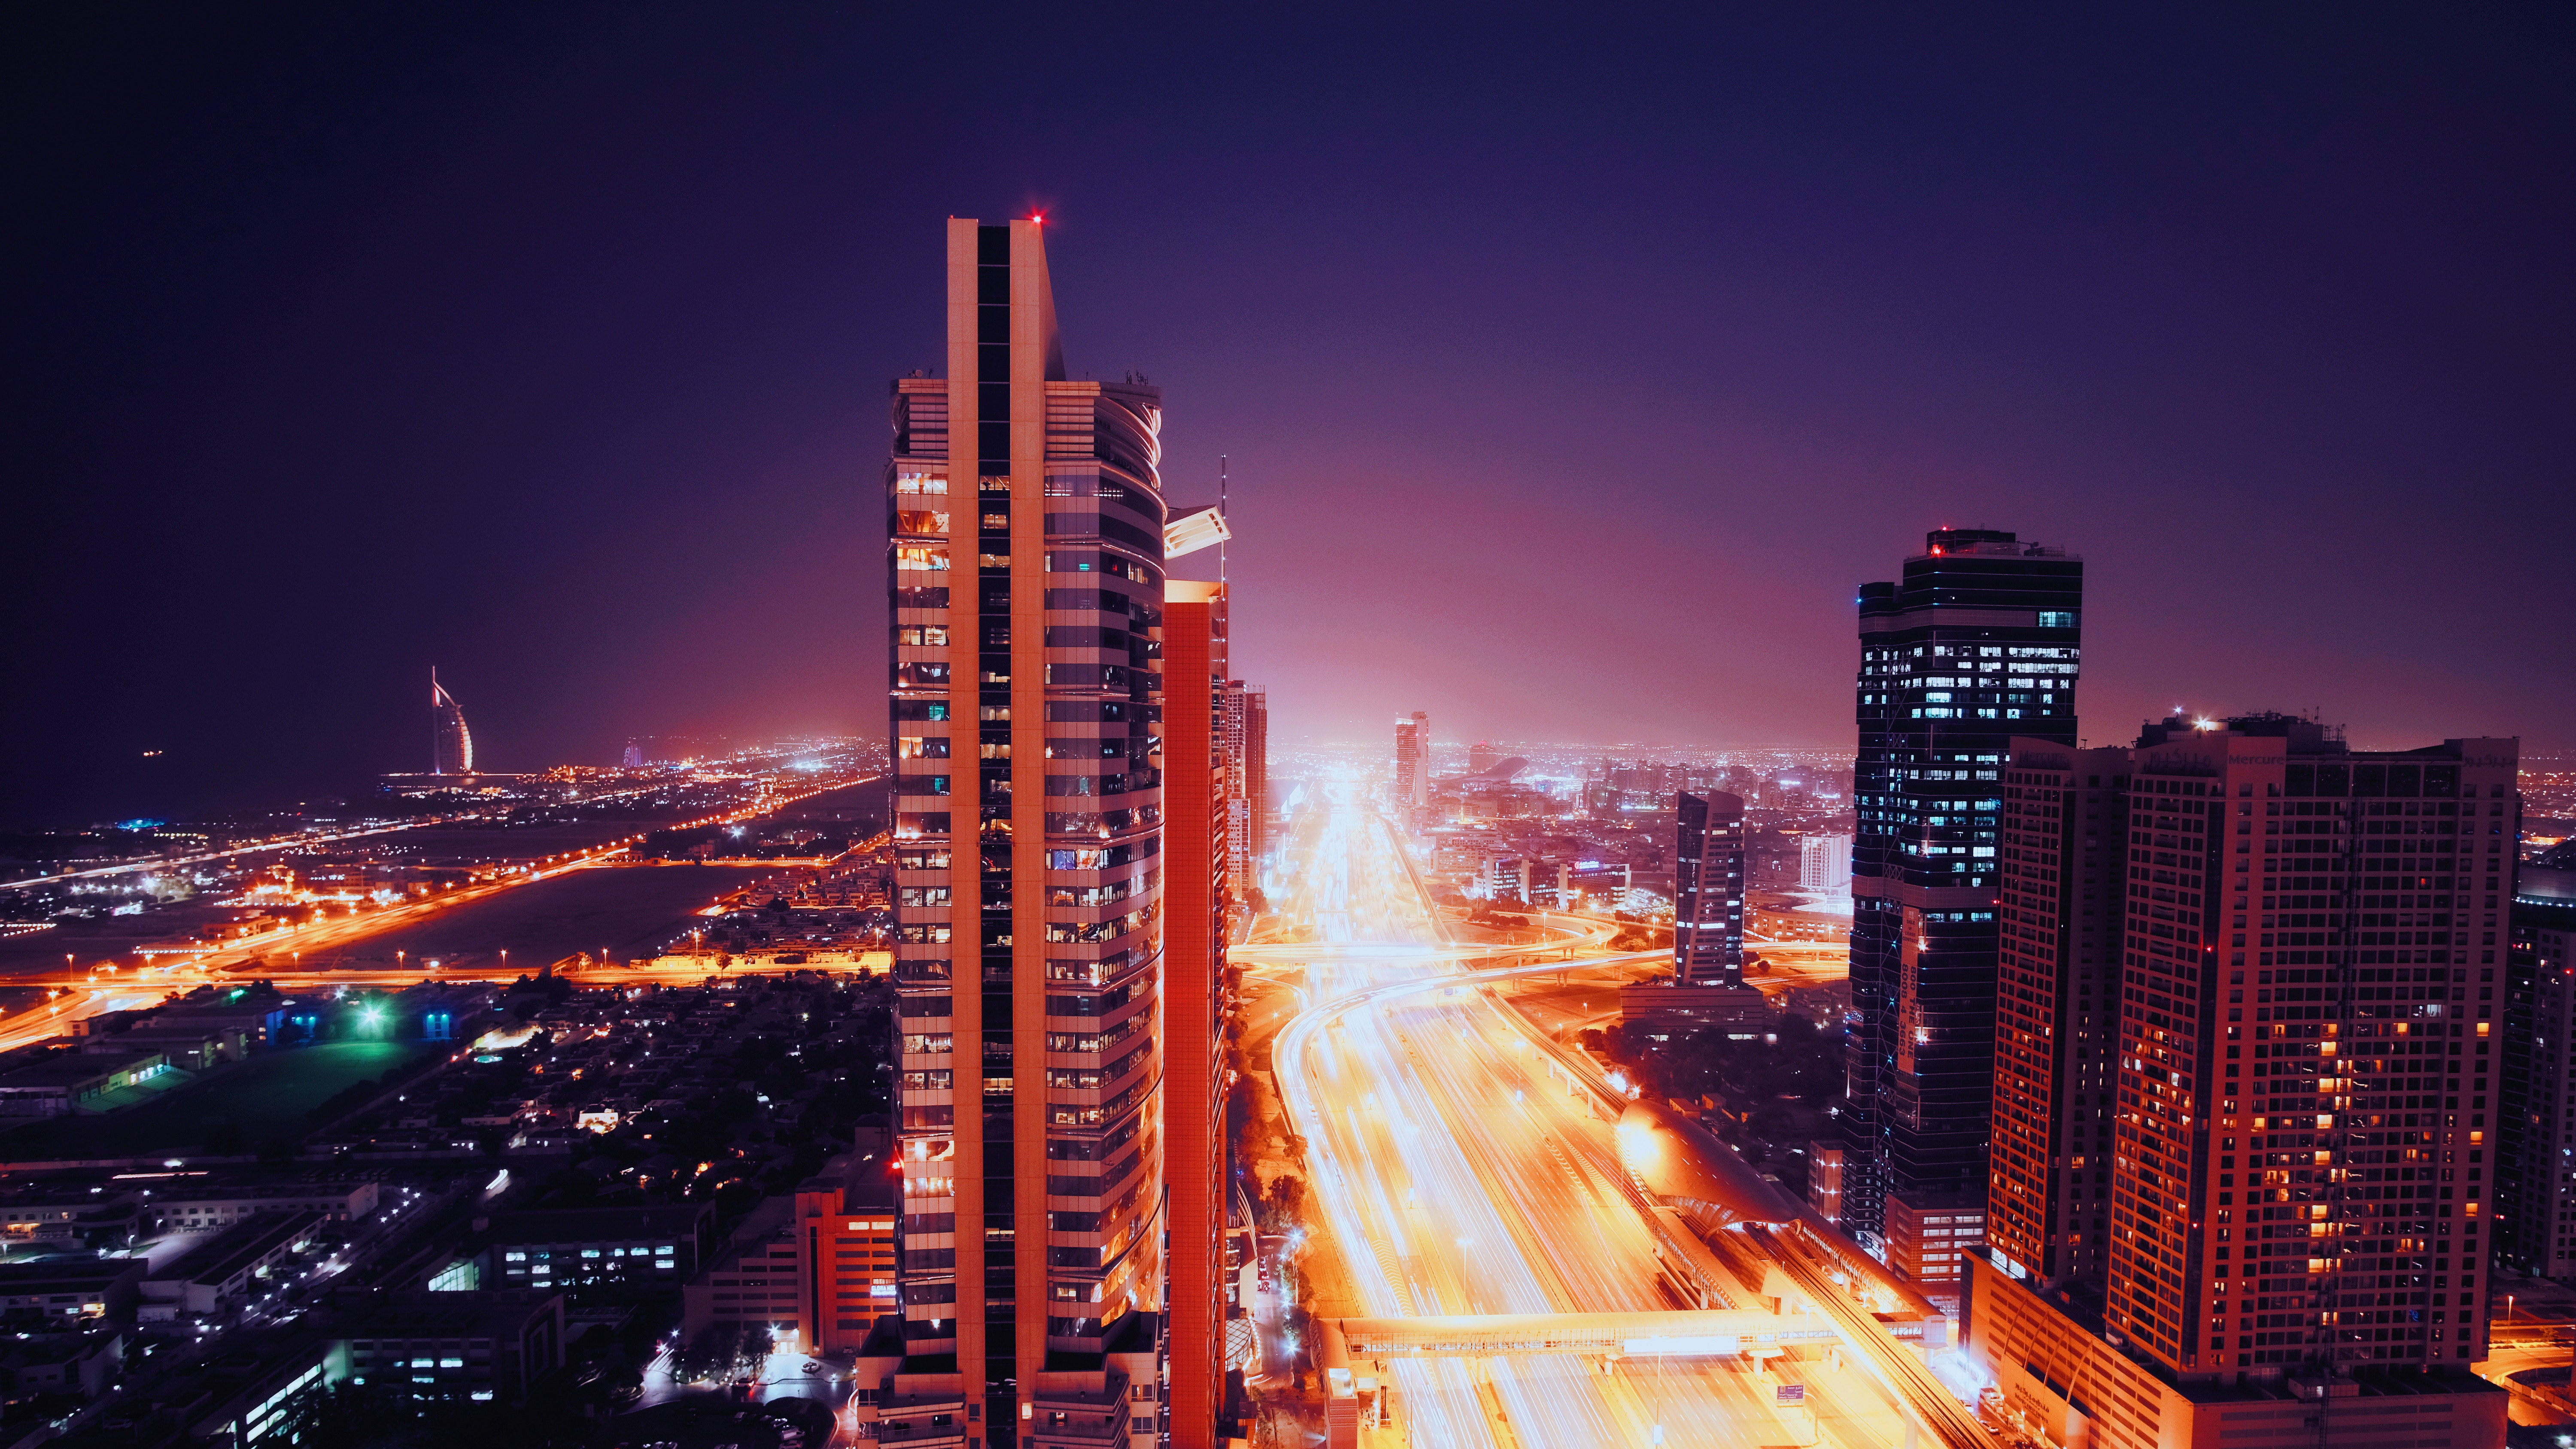 131010 download wallpaper Night City, City Lights, Dubai, United Arab Emirates, Architecture, Cities screensavers and pictures for free